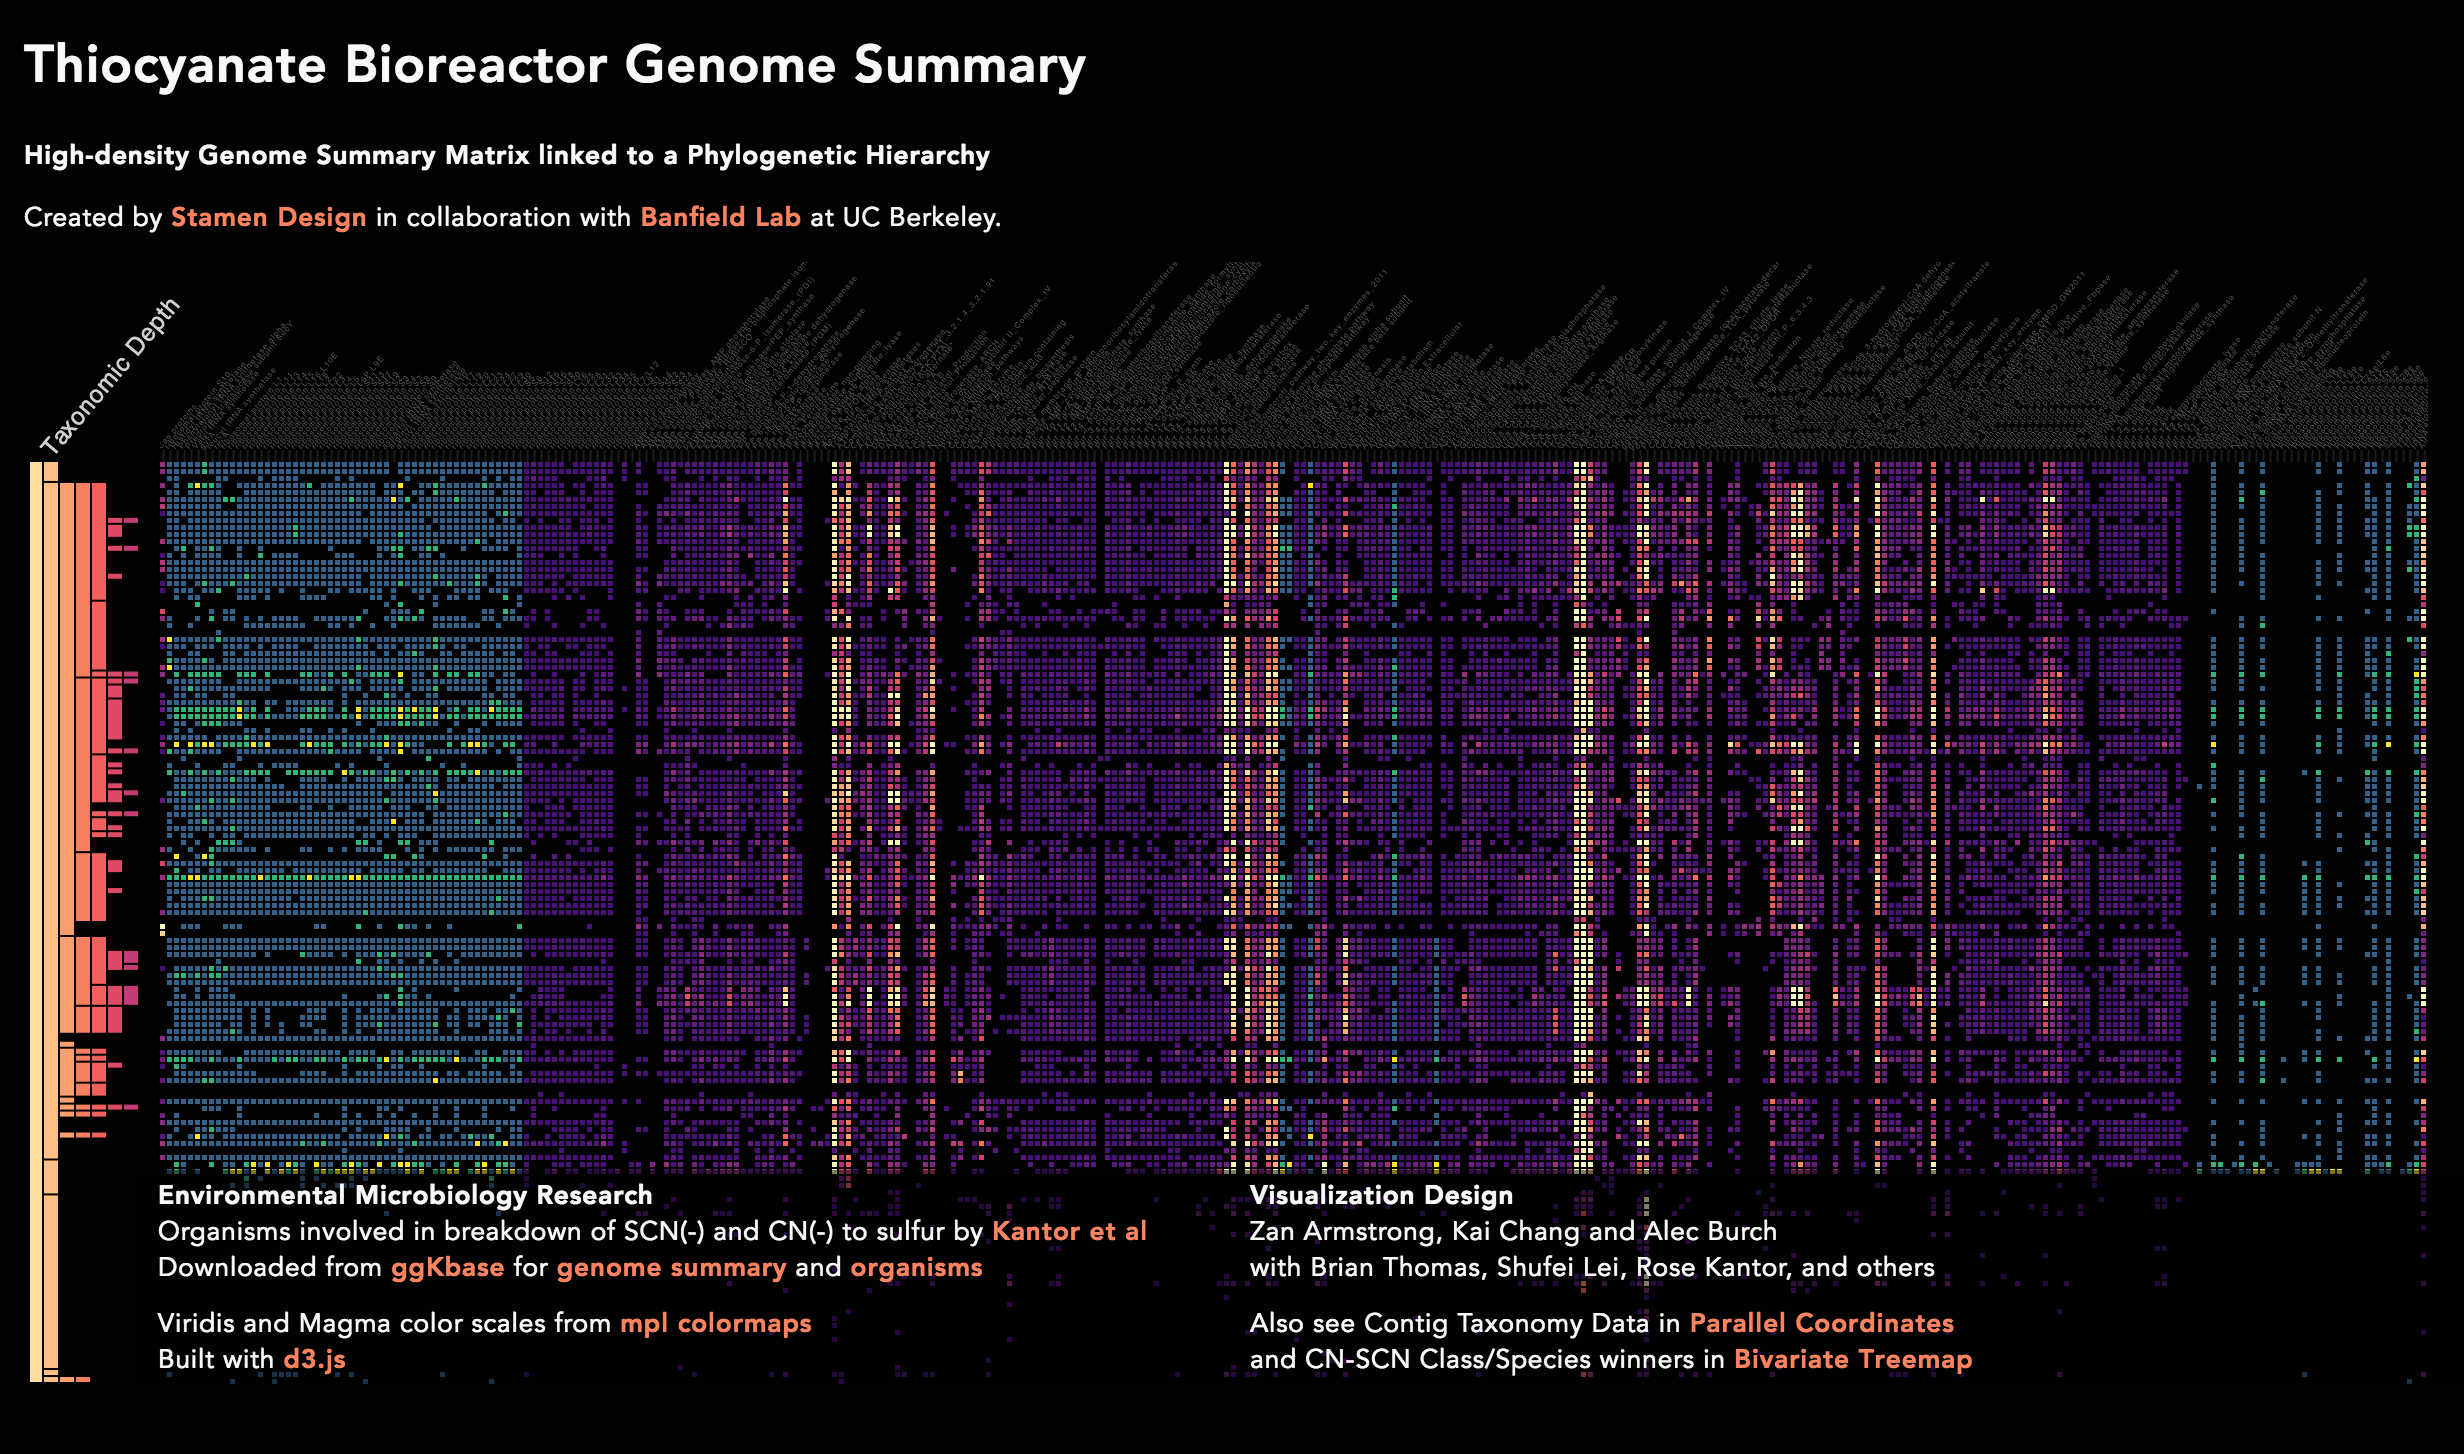 genome-summary.png